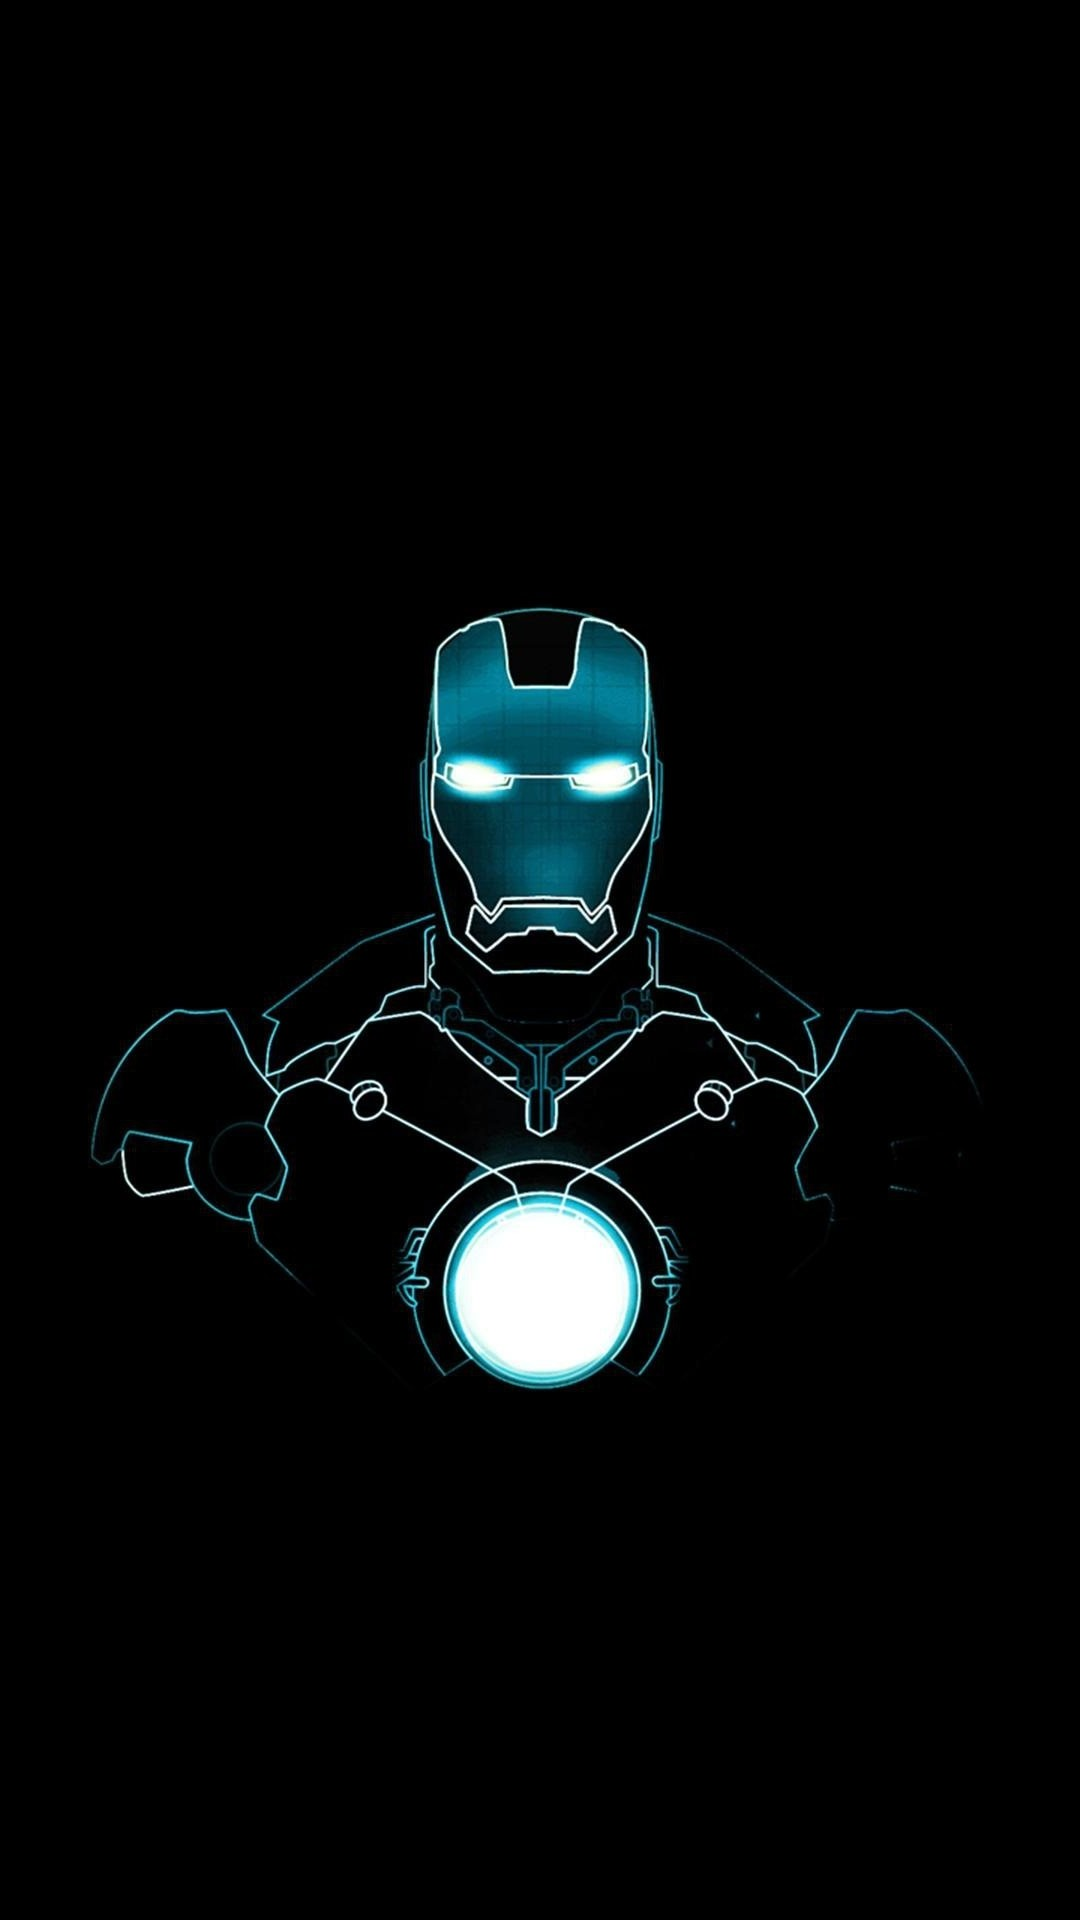 Live Iphone X Wallpaper From Commercial Ironman Wallpaper Iphone 7 2019 3d Iphone Wallpaper